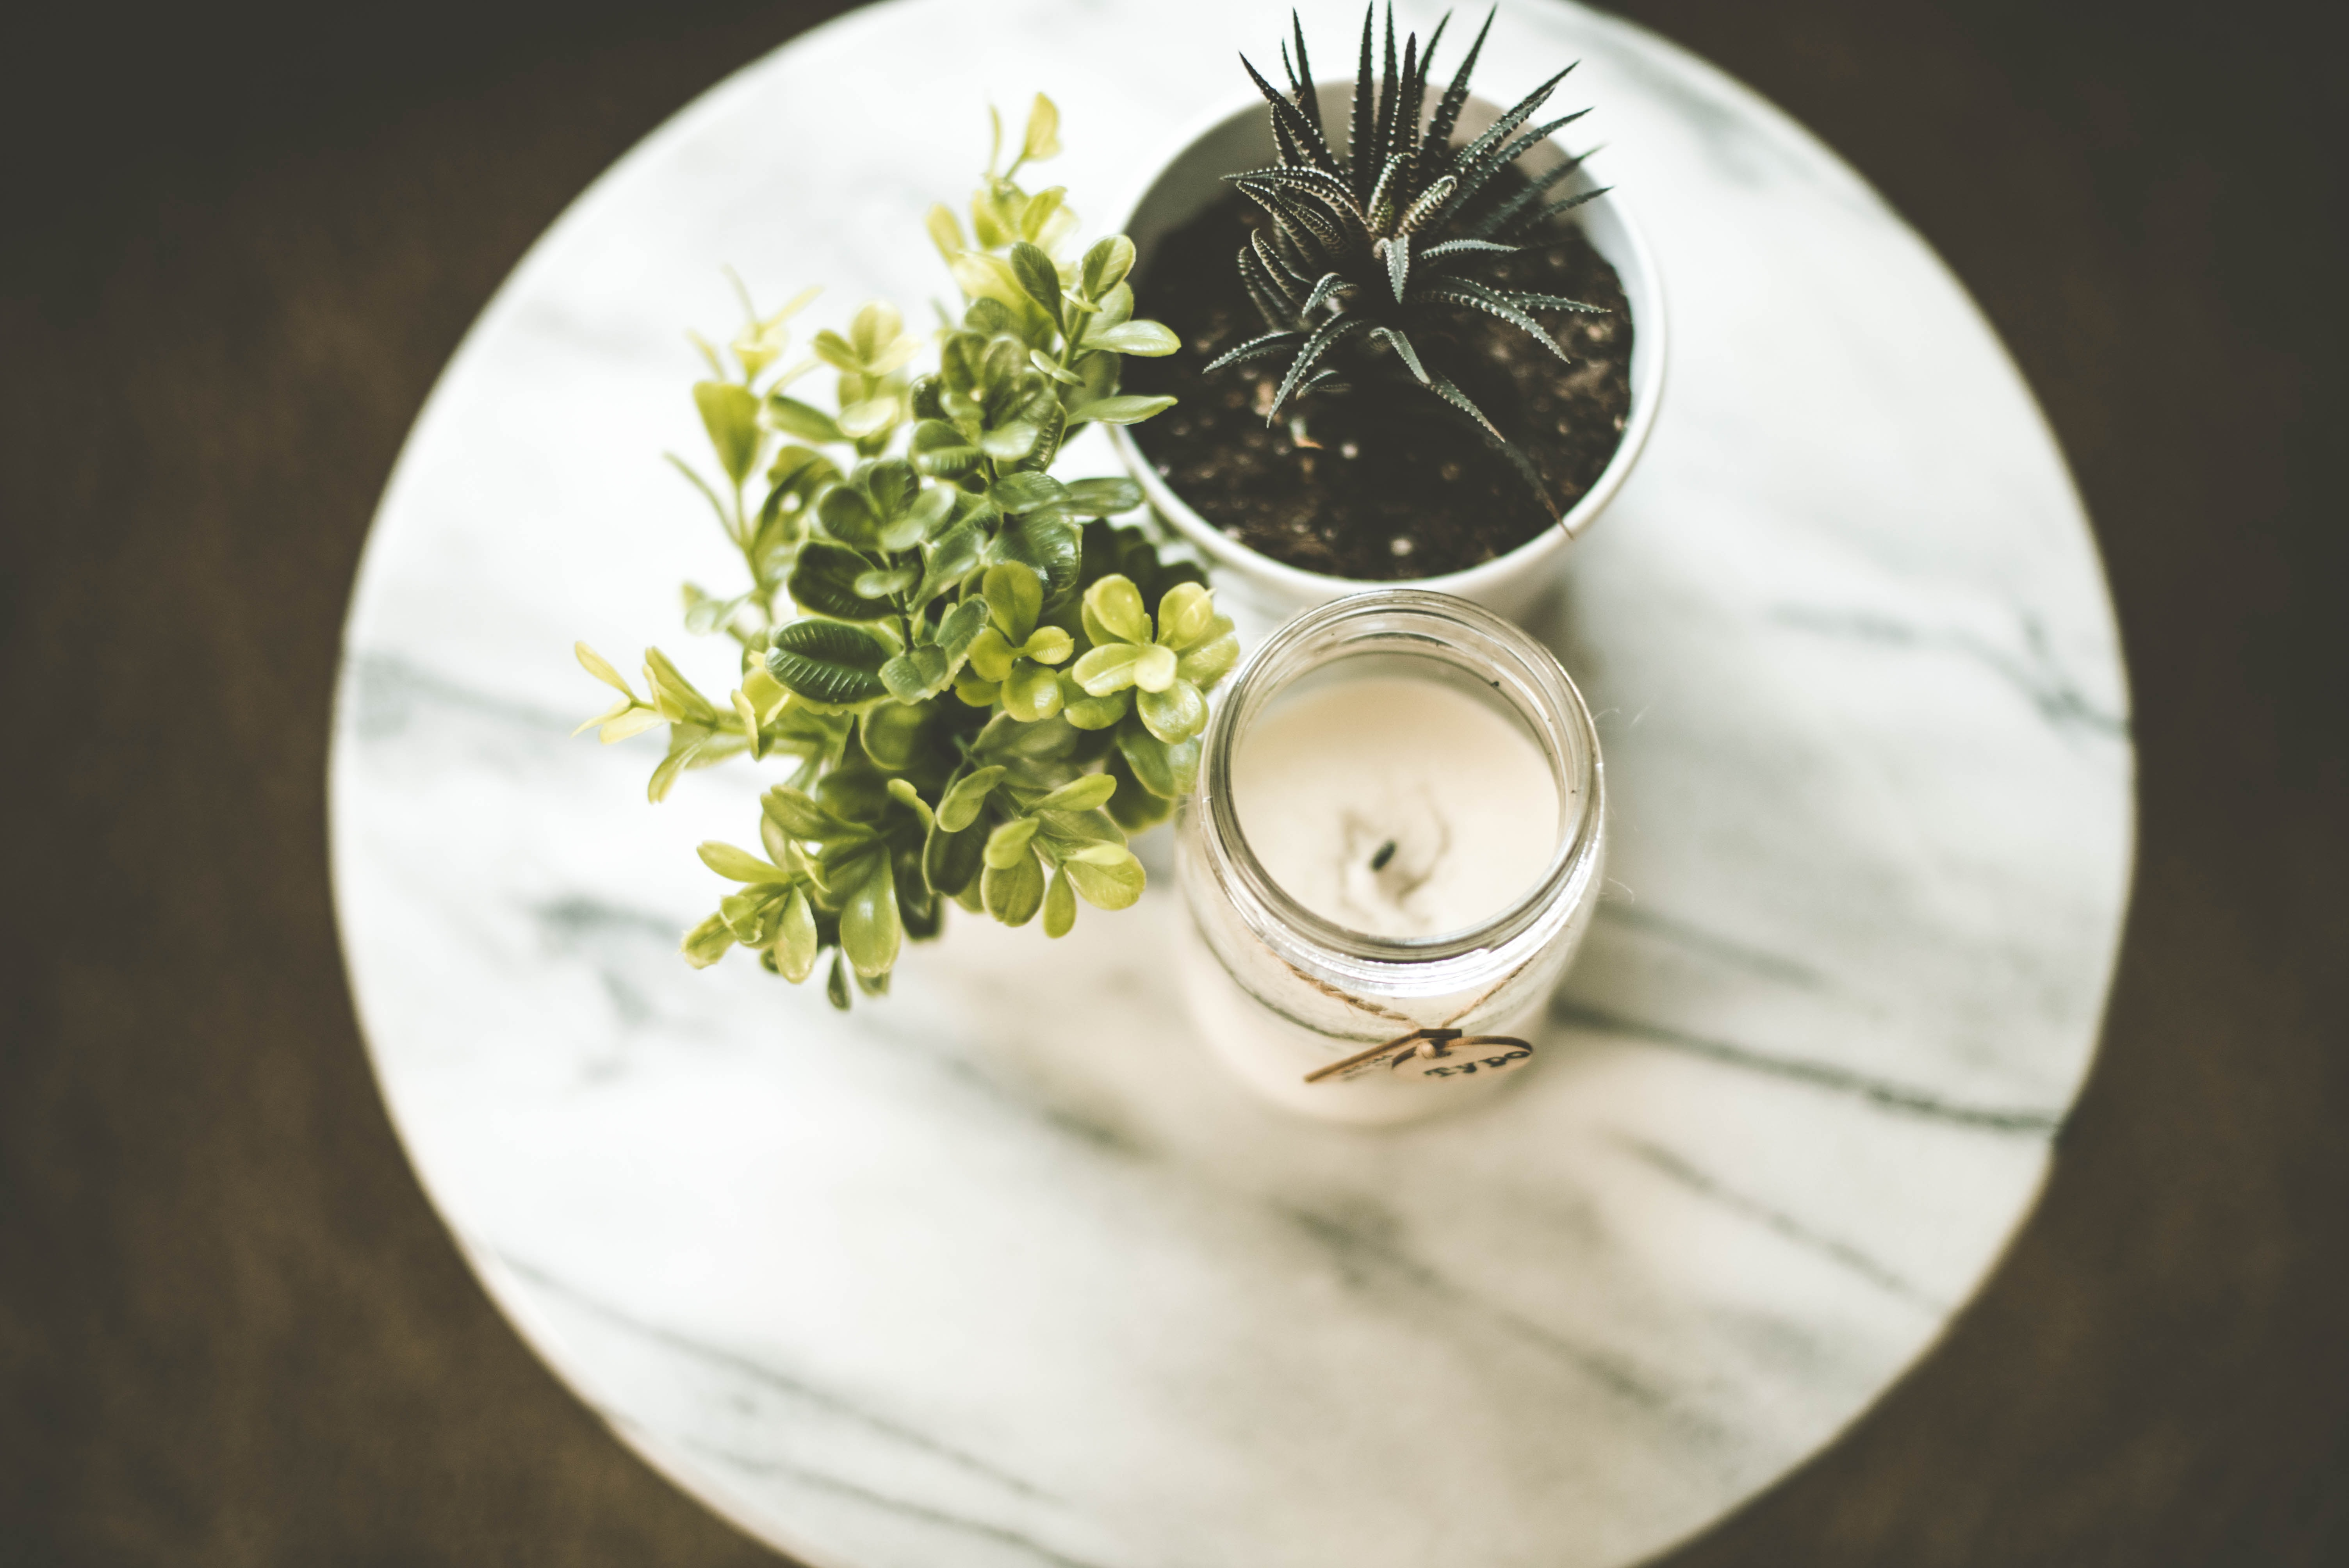 white votive candle near plant pot